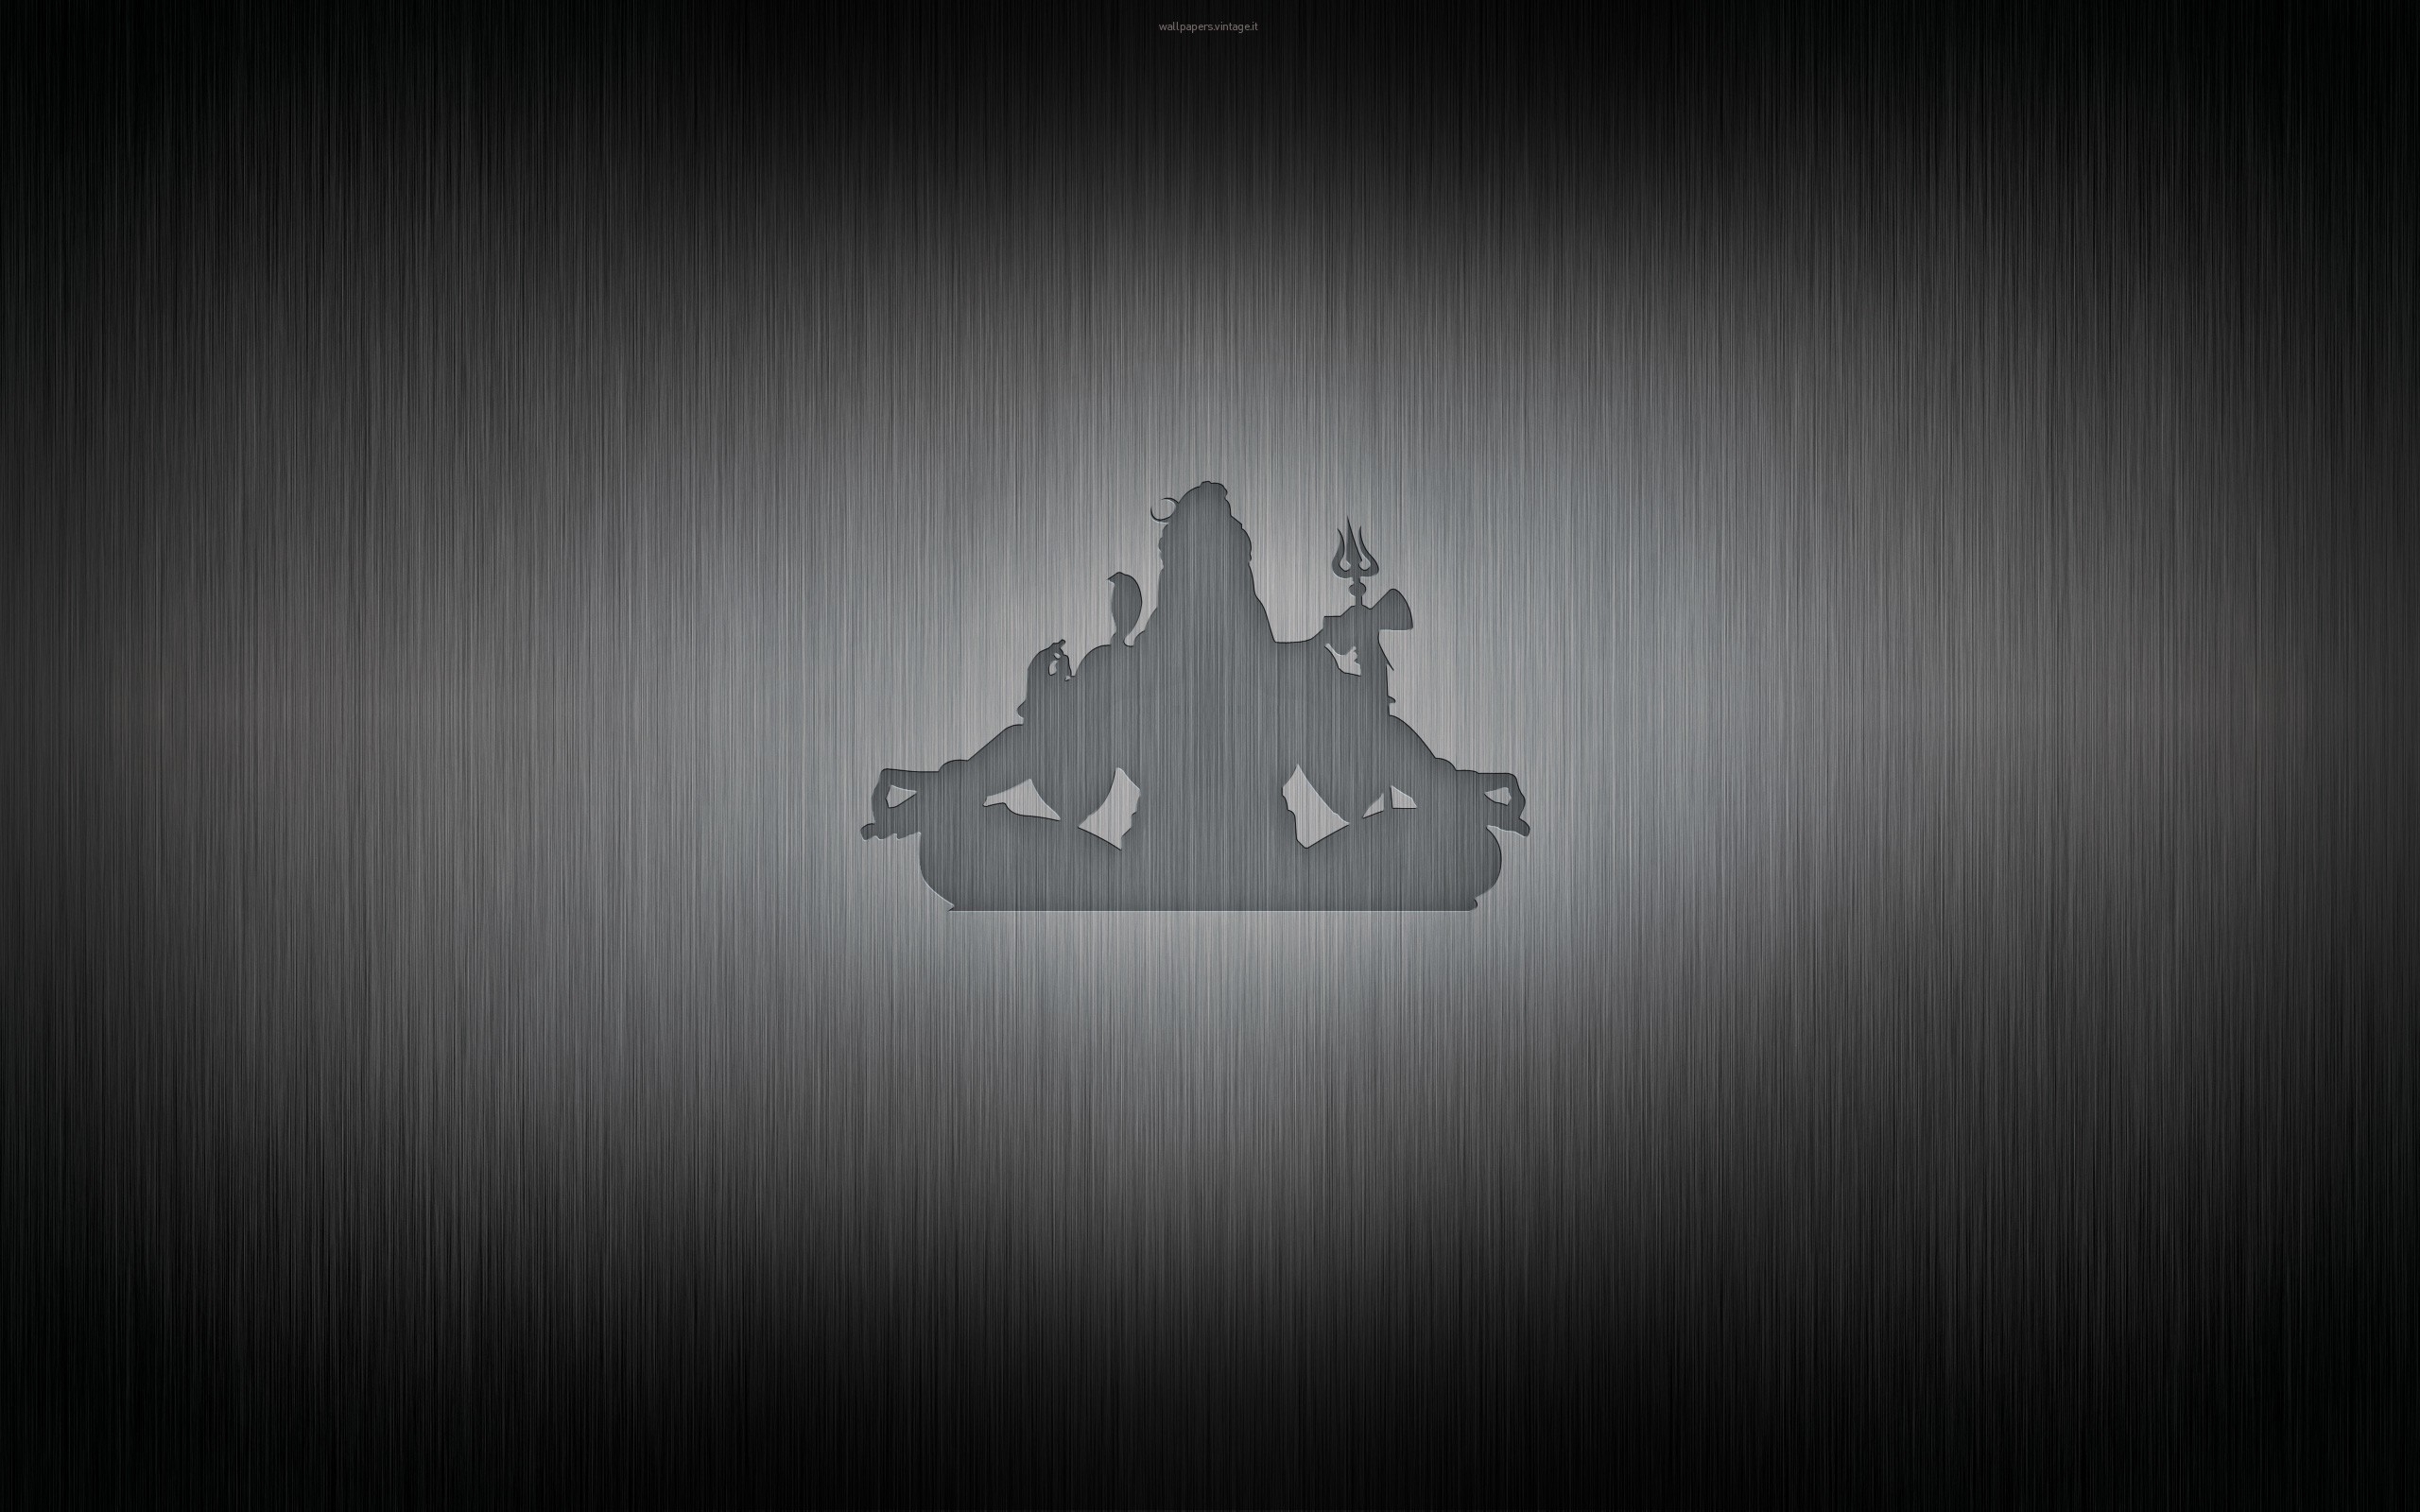 2560x1600 Shiva wallpaper